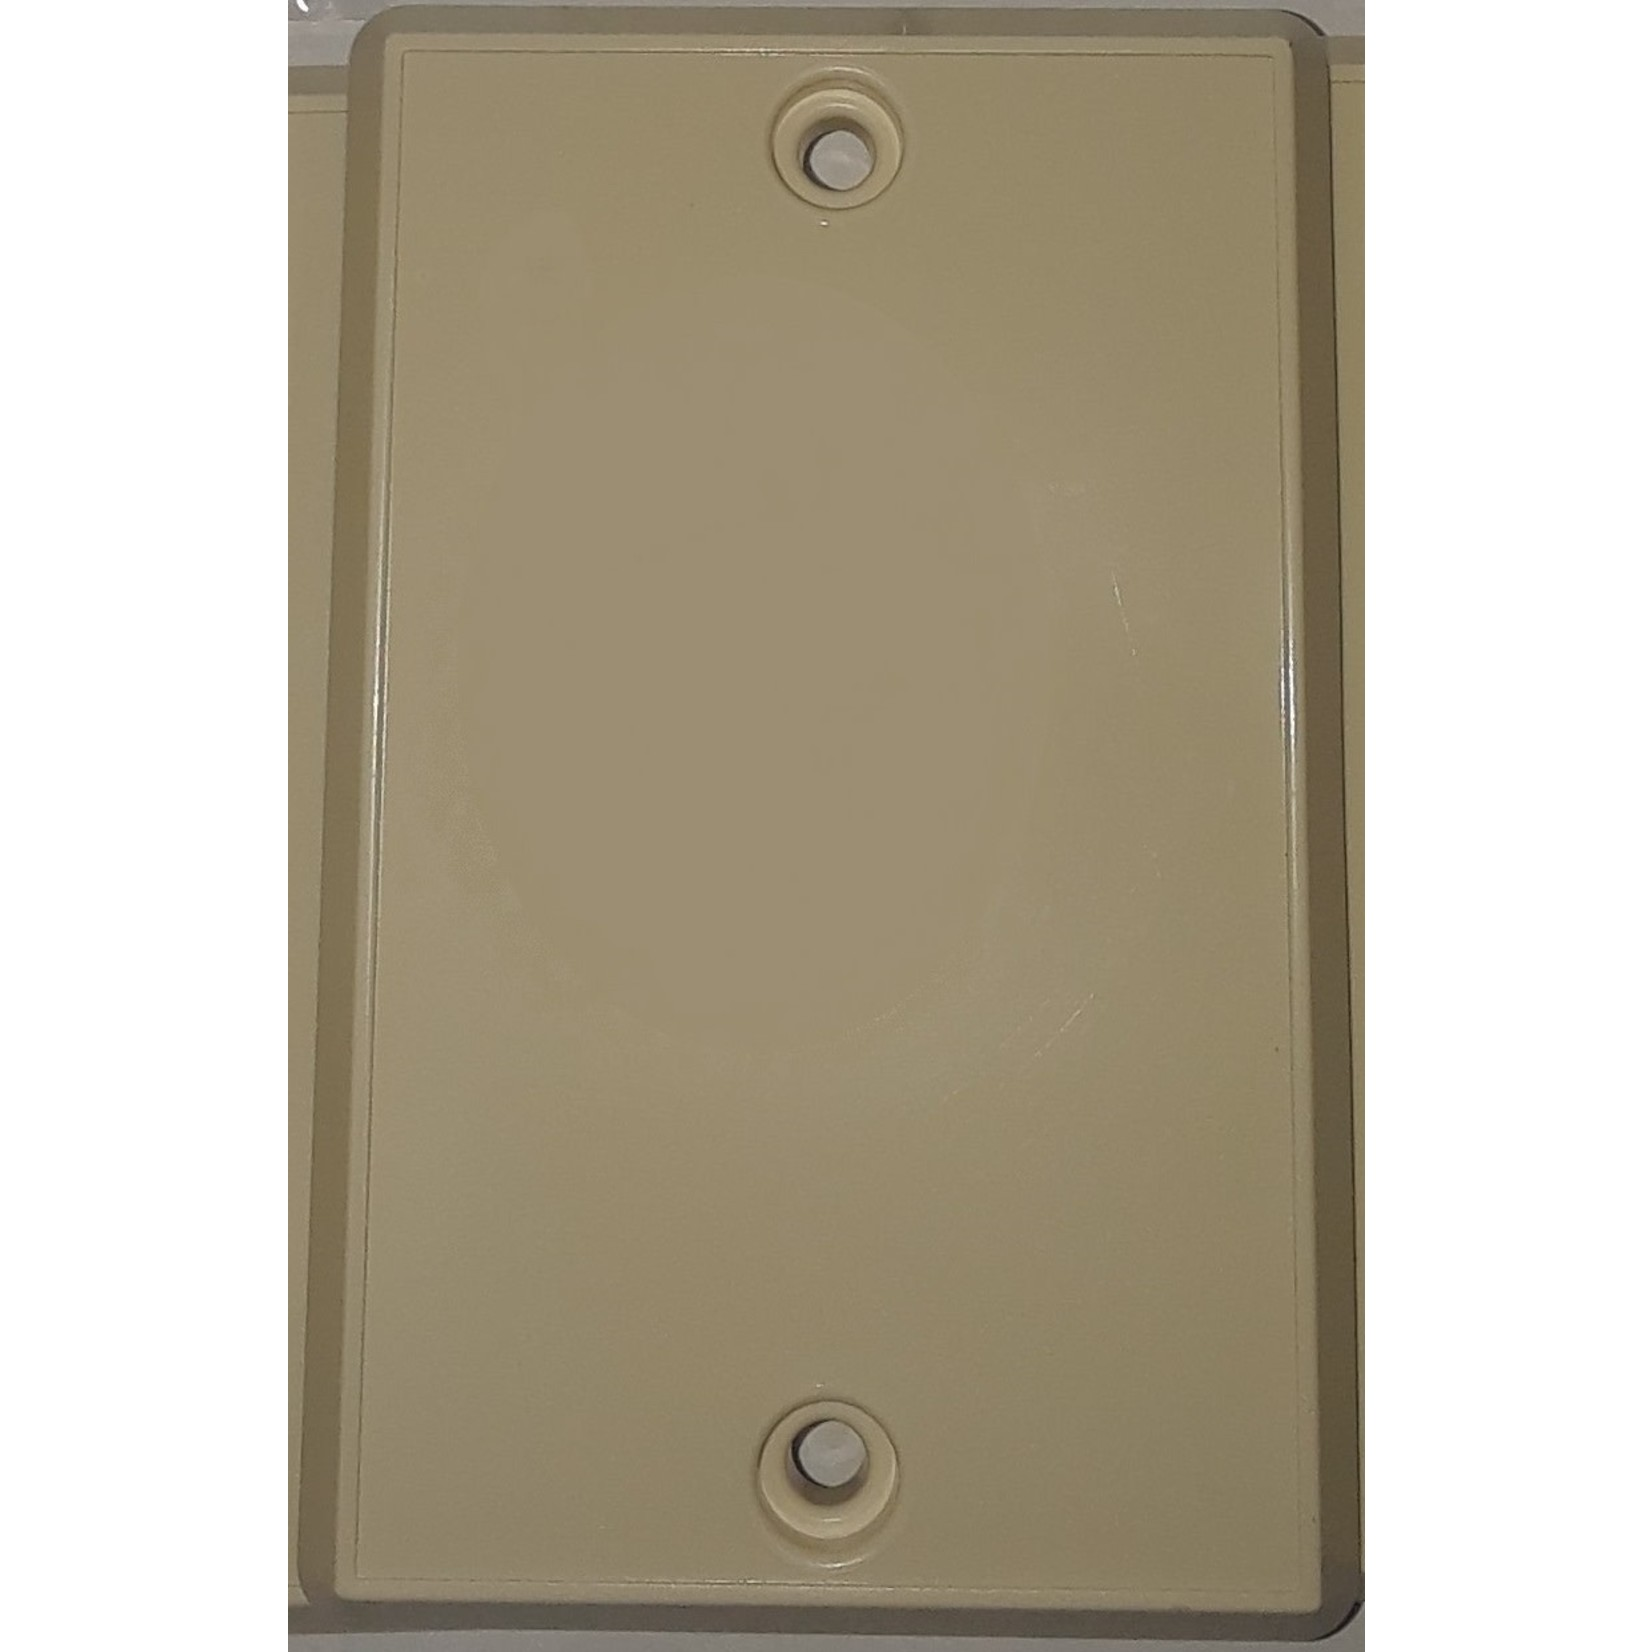 BEAM Central Vacuum Inlet Valve Cover Plate - Ivory